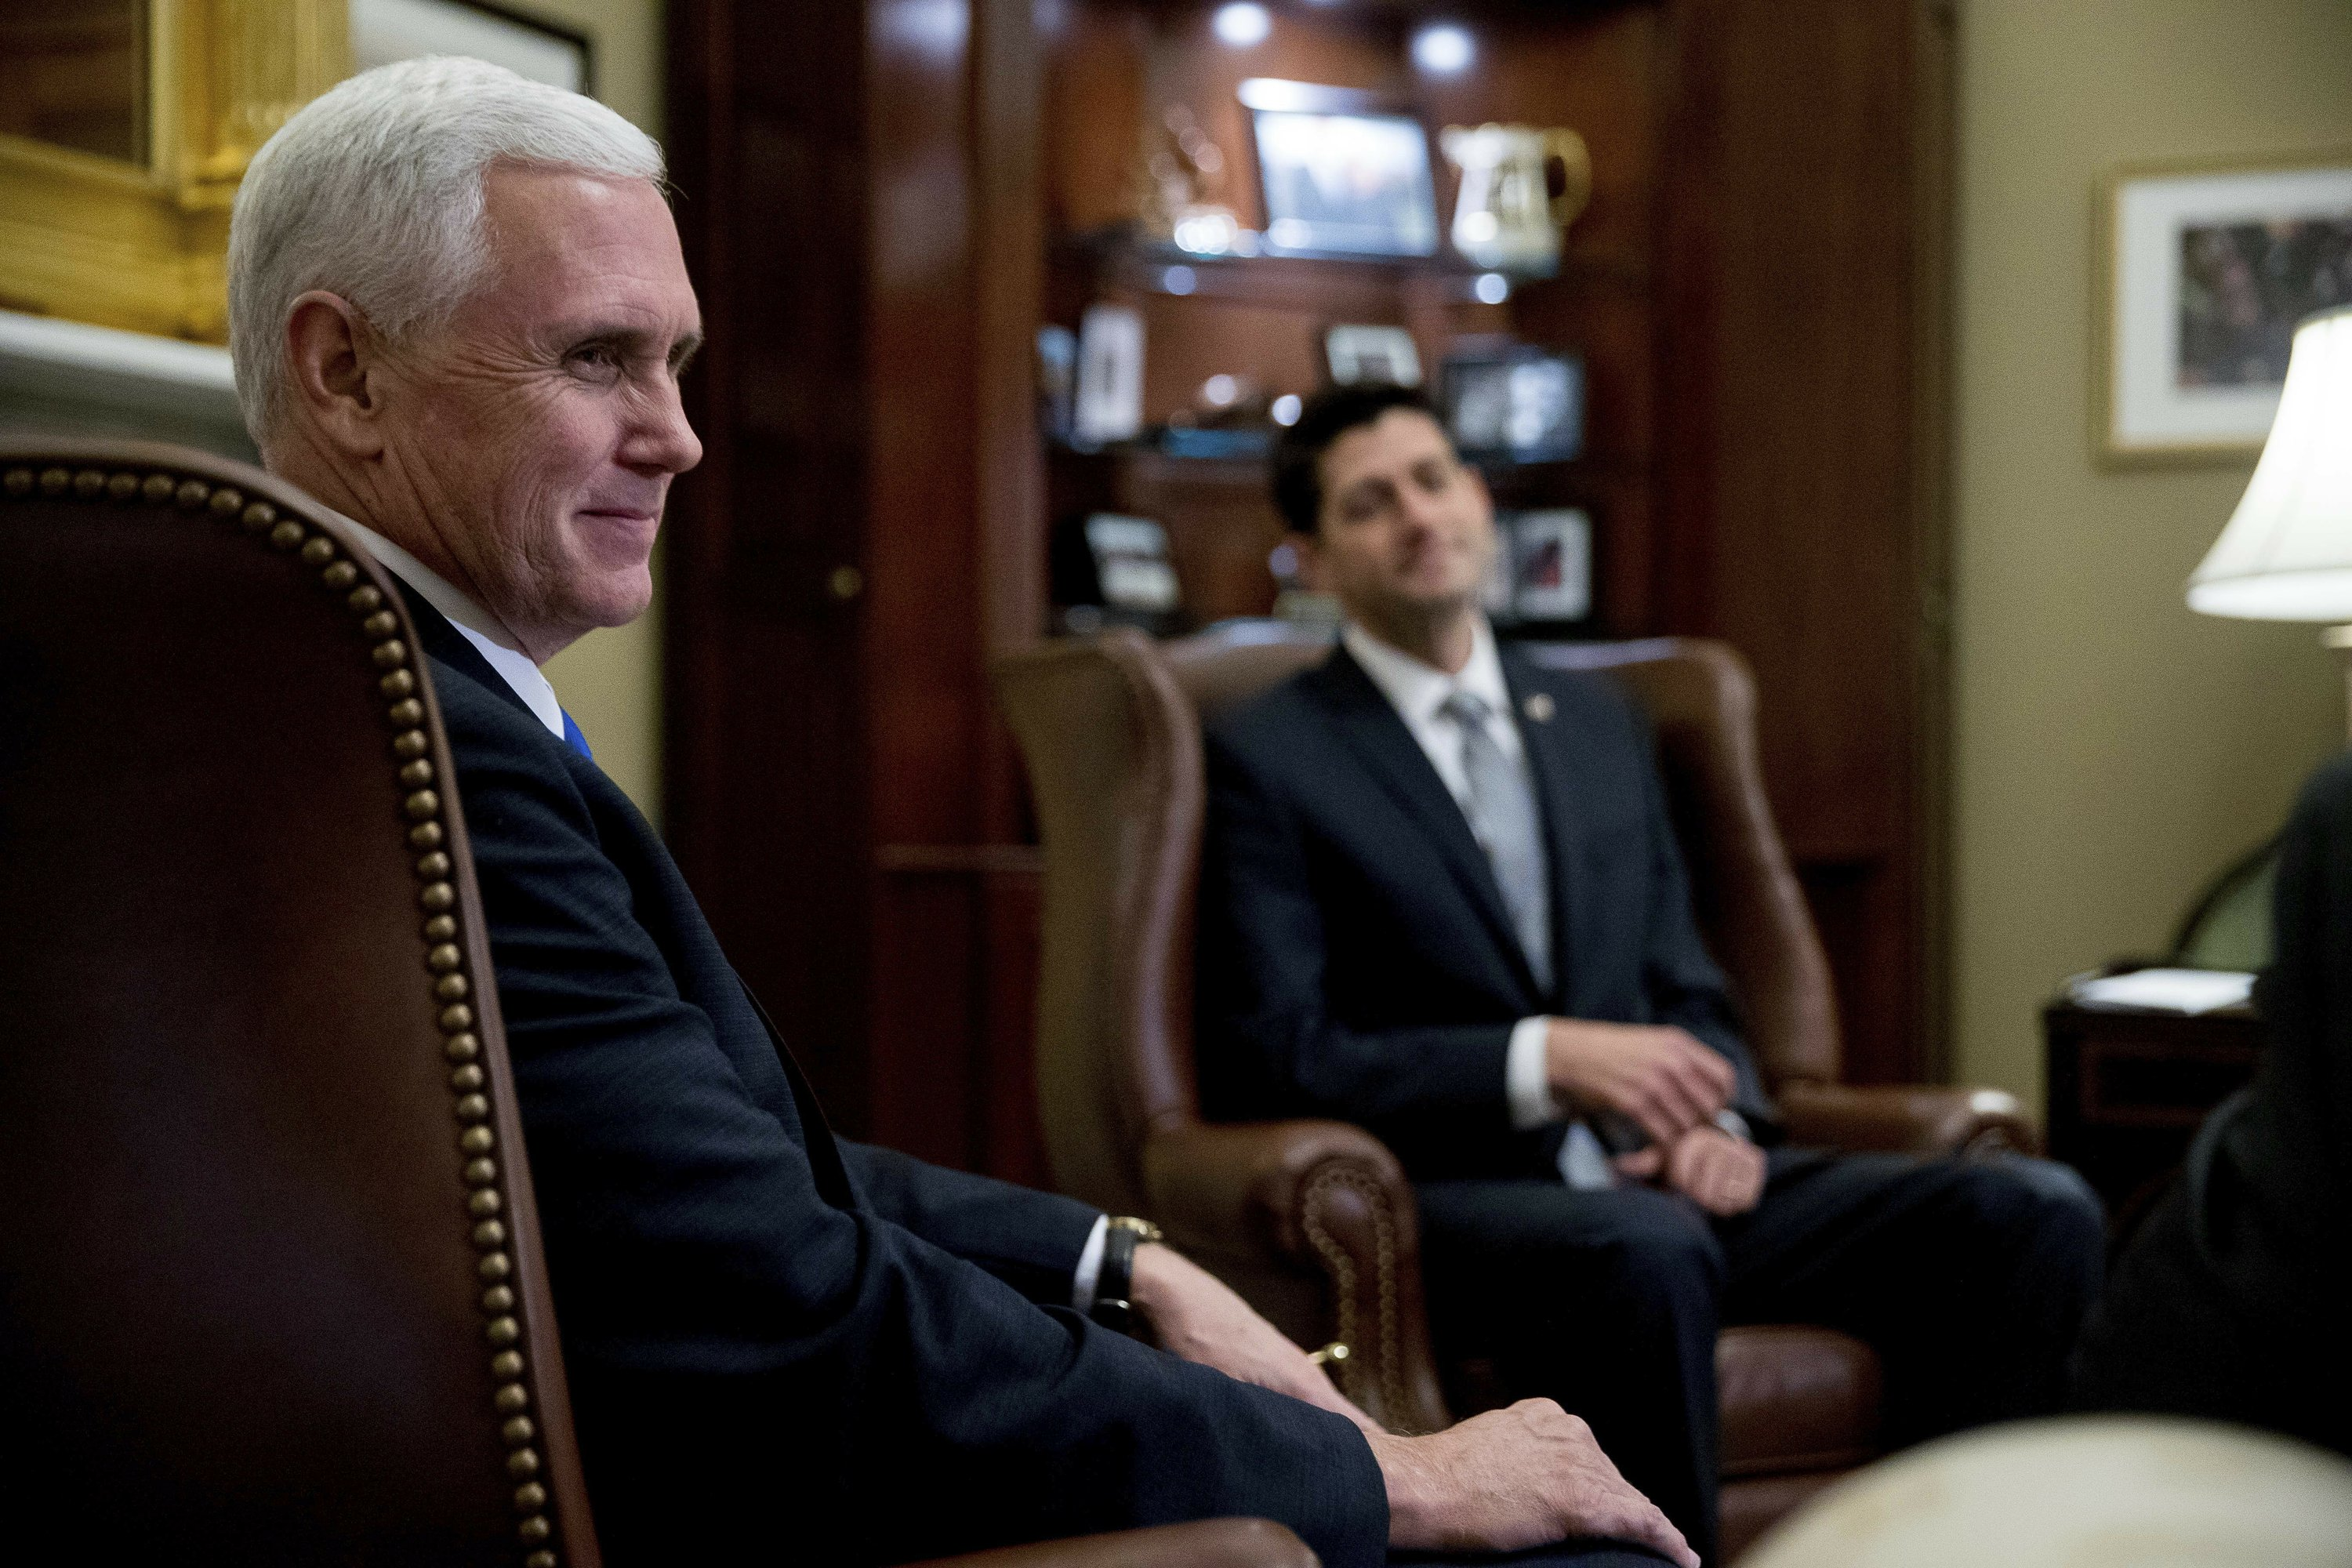 The Latest: Pence says he's eager to work with Congress